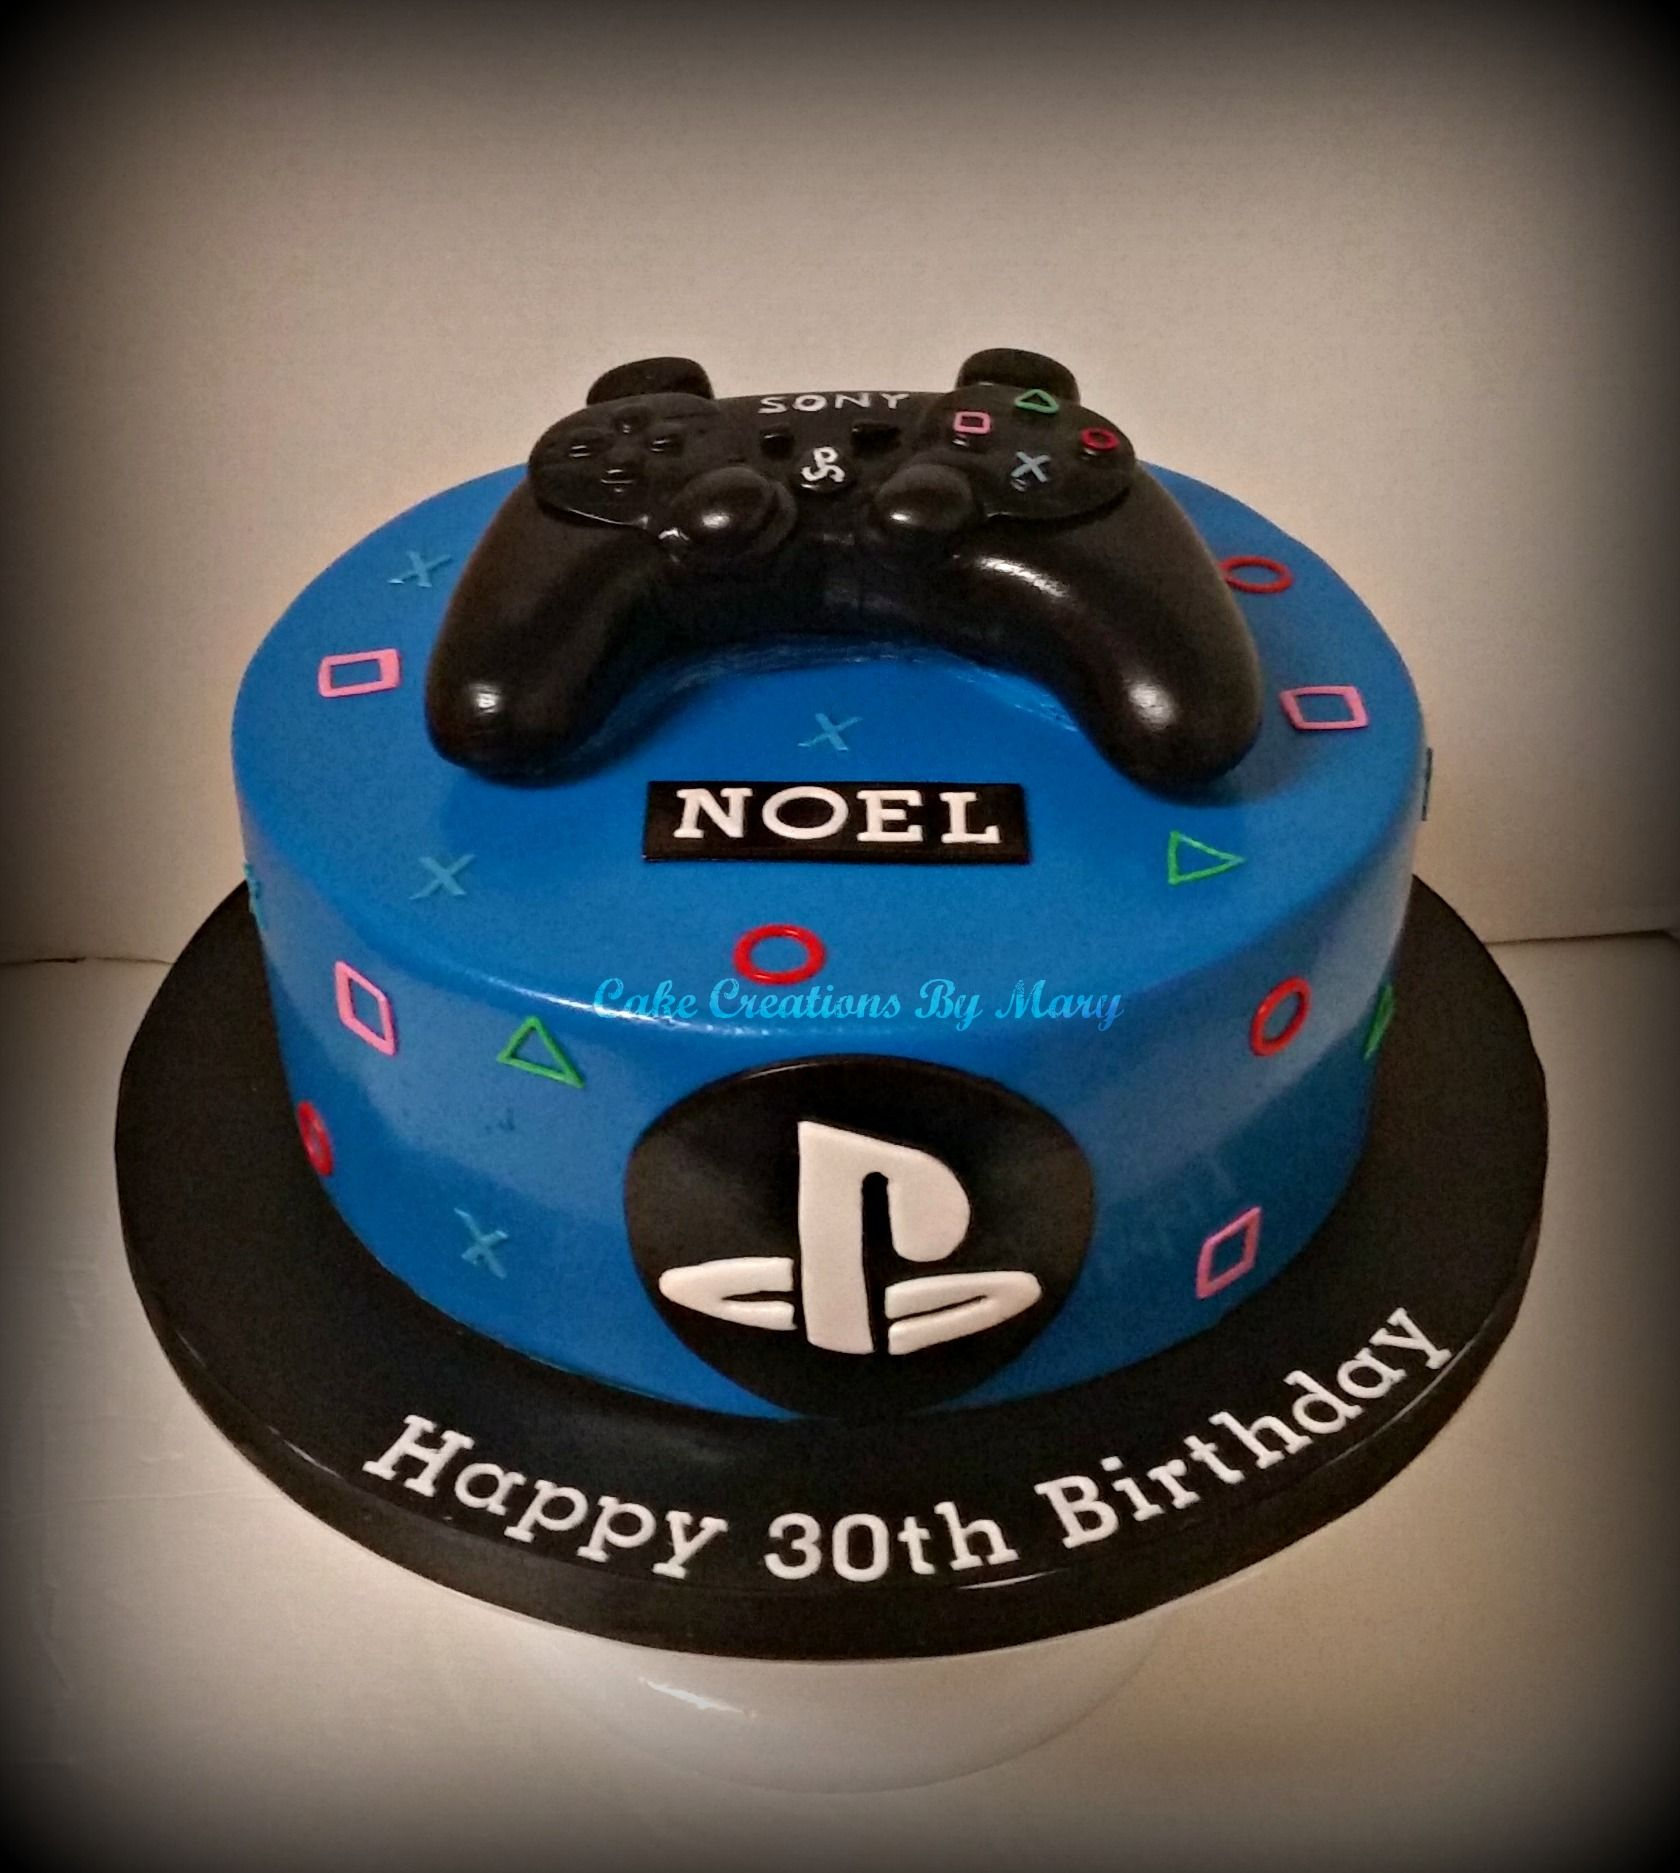 Playstation Cake … Playstation cake, Cake, 4th birthday